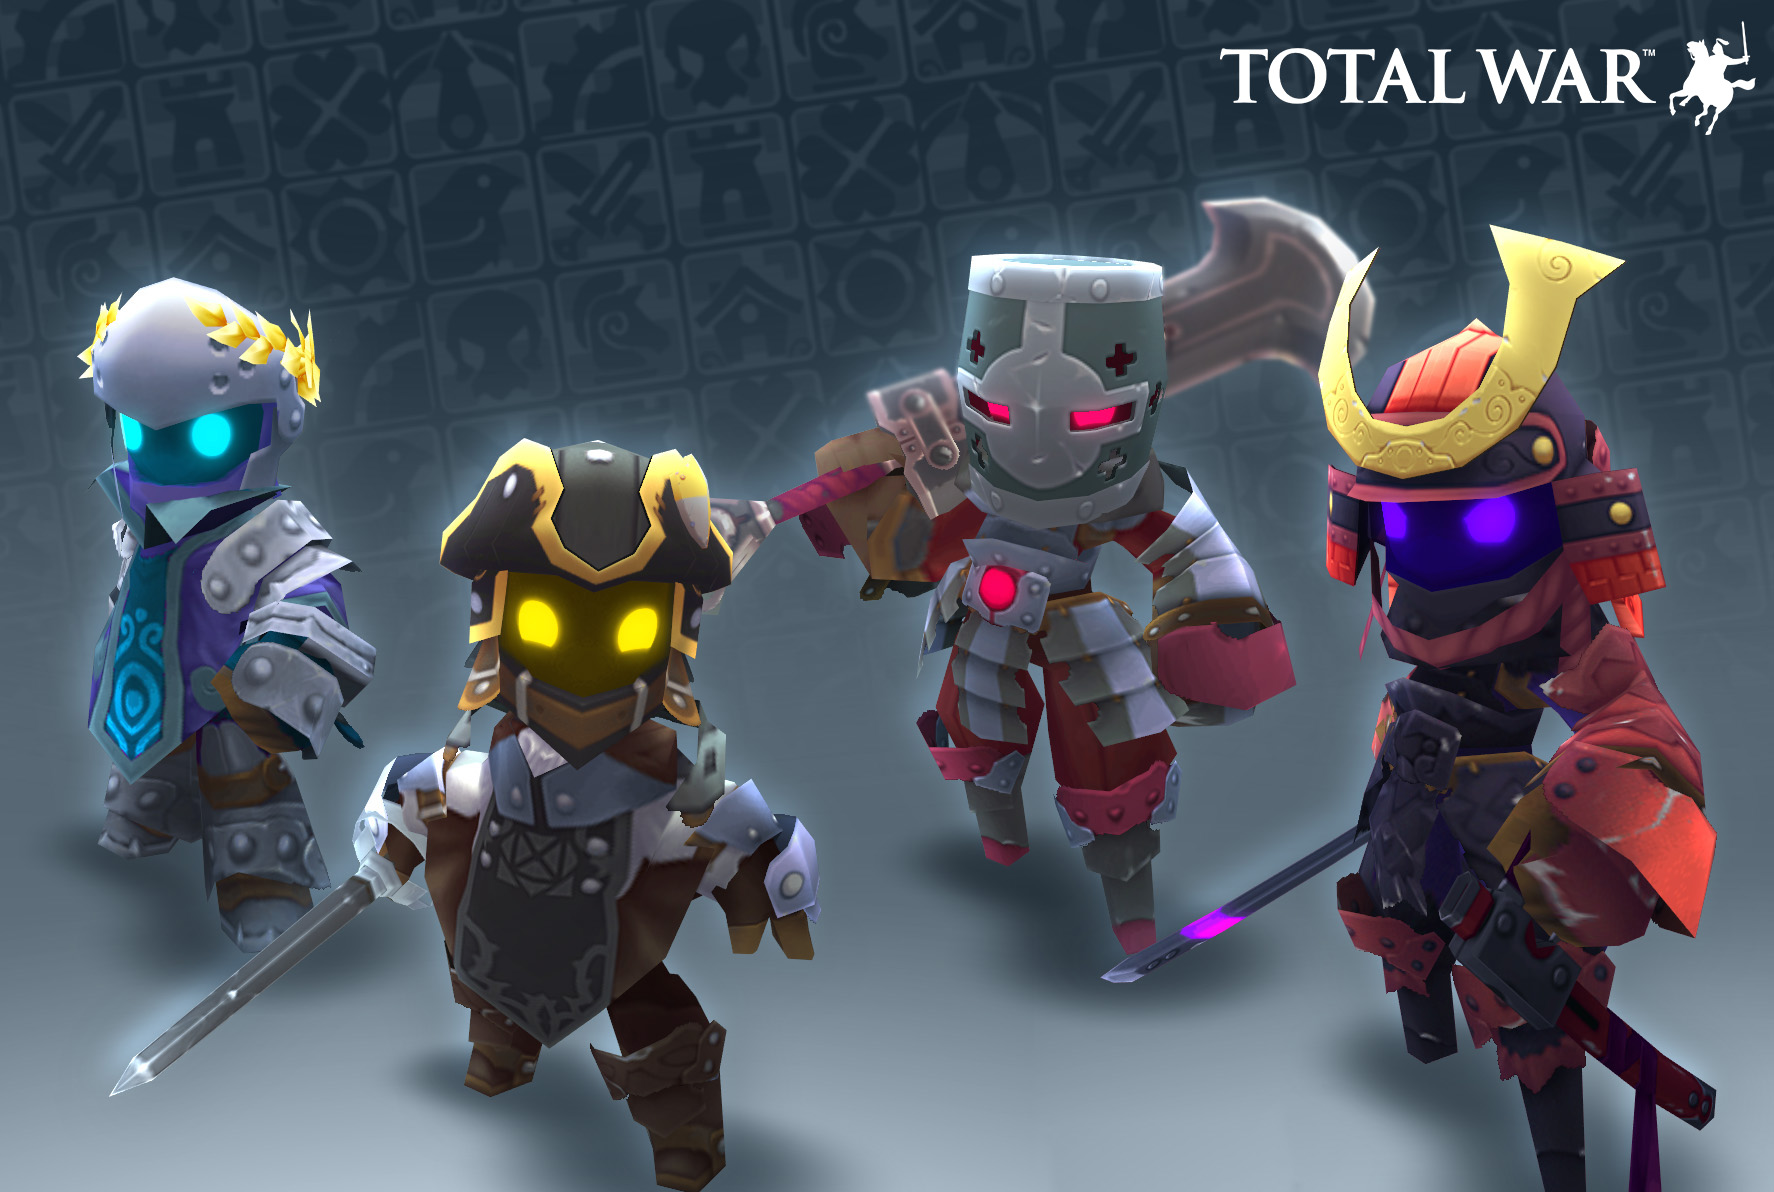 Shogun 2 Fall Of The Samurai Wallpaper Total War Invades Team Fortress And Spiral Knights For